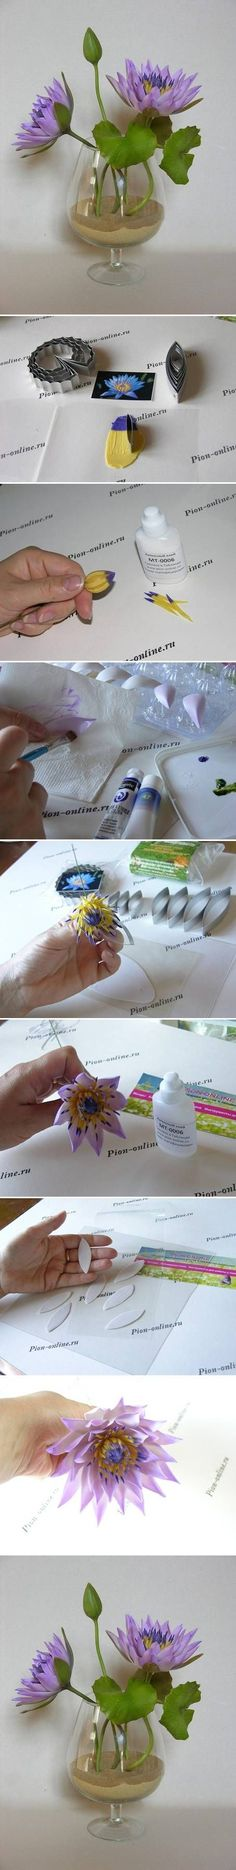 How to make Polymer Clay Lotus Flowers step by step DIY tutorial instructions / How To Instructions